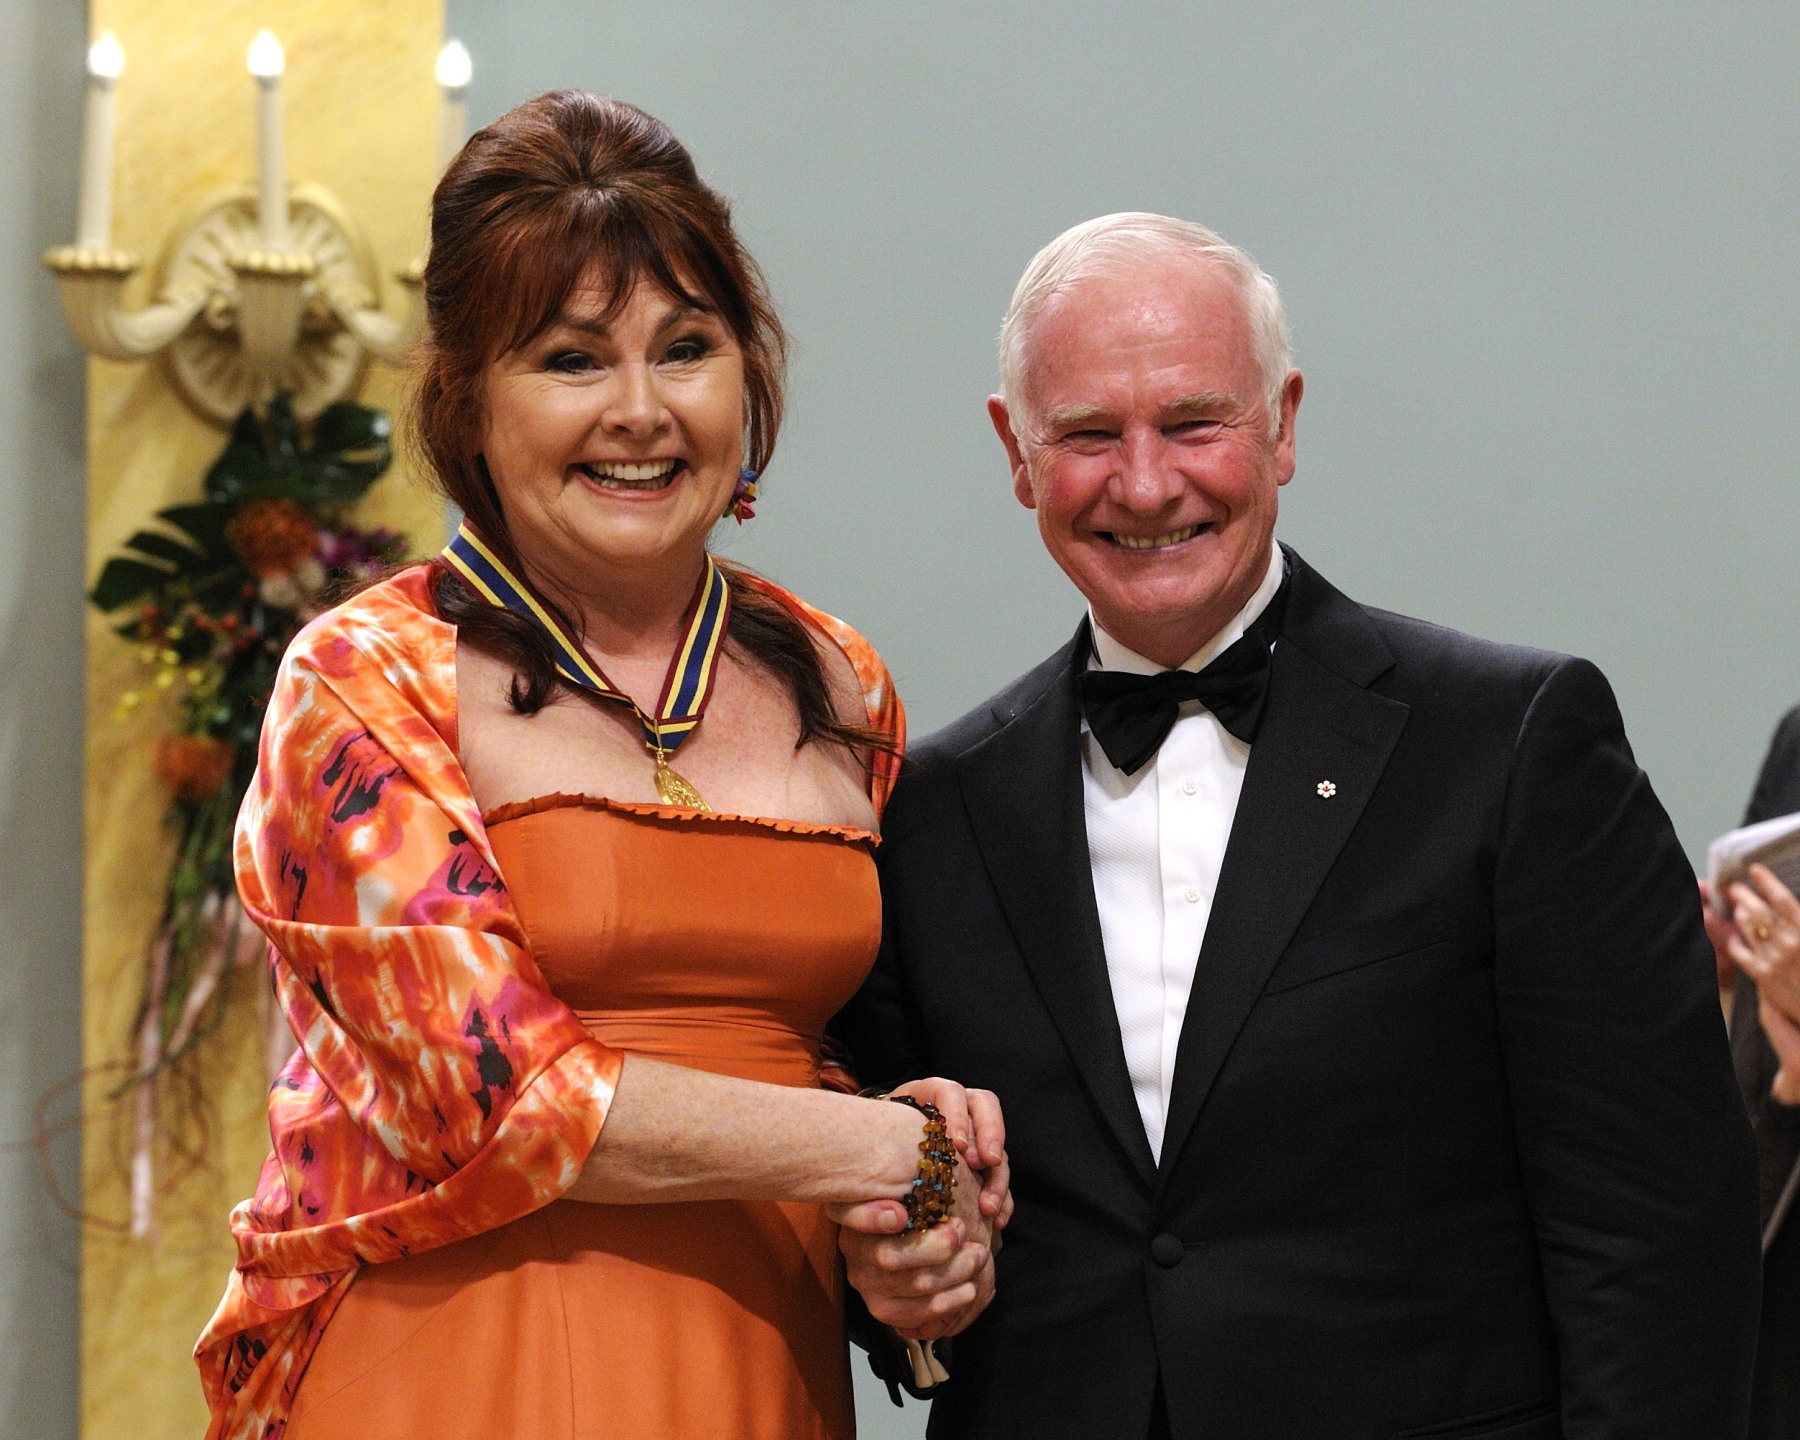 Ms. Mary Walsh, writer, comedian, director and political satirist, received the Lifetime Artistic Achievement Award.